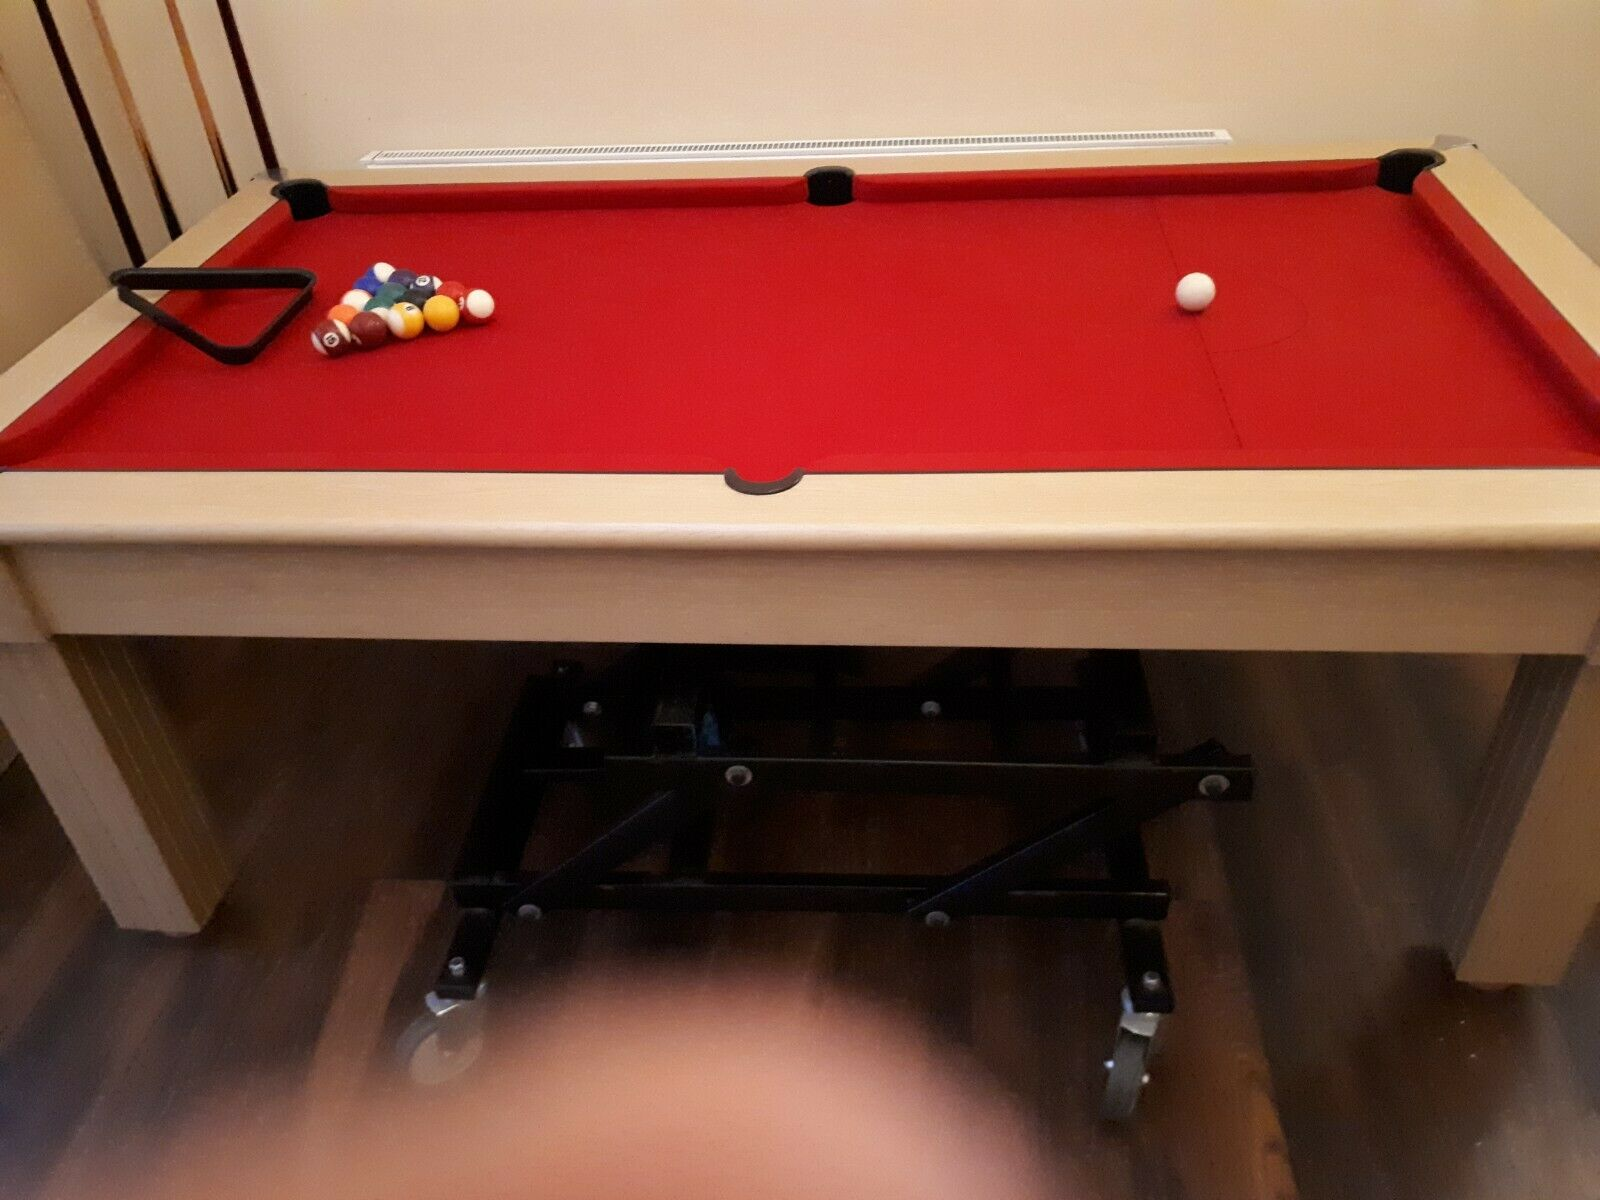 Pool table and dining table 7 foot overall size, 6 foot playing area, slate bed,